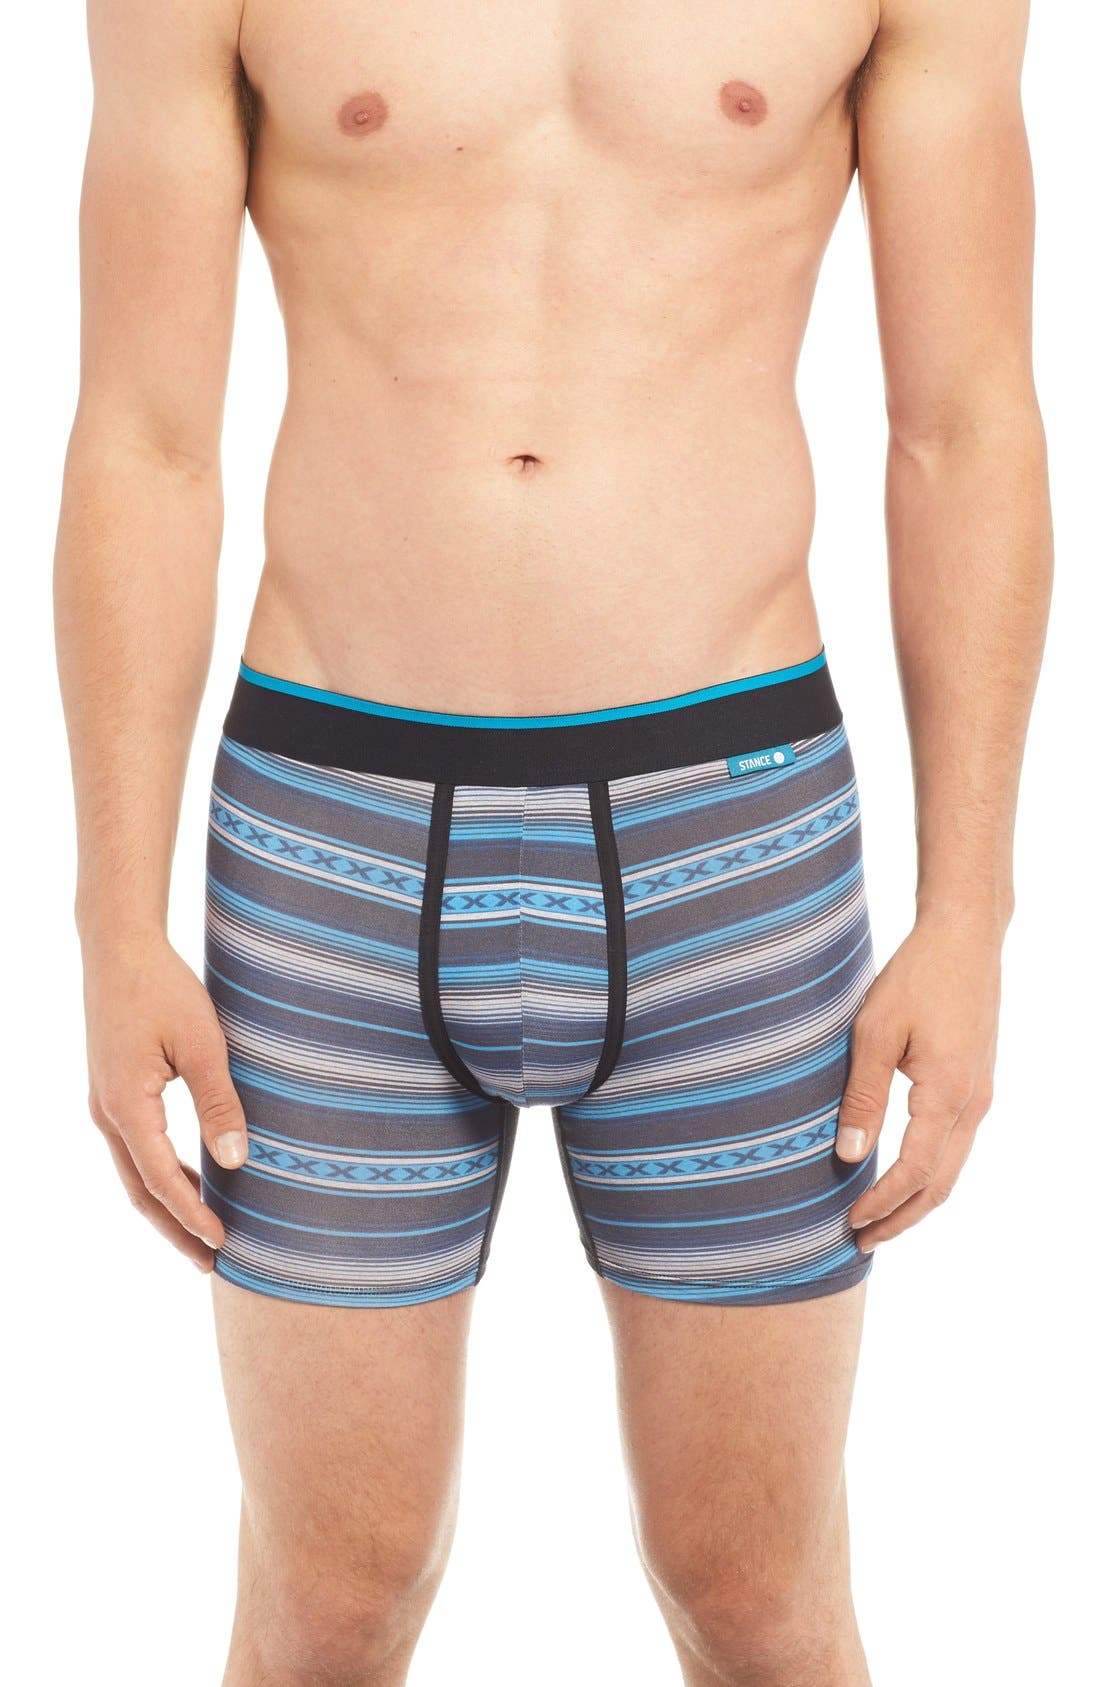 Alternate Image 1 Selected - Stance Wholester Centerfire Stretch Modal Boxer Briefs